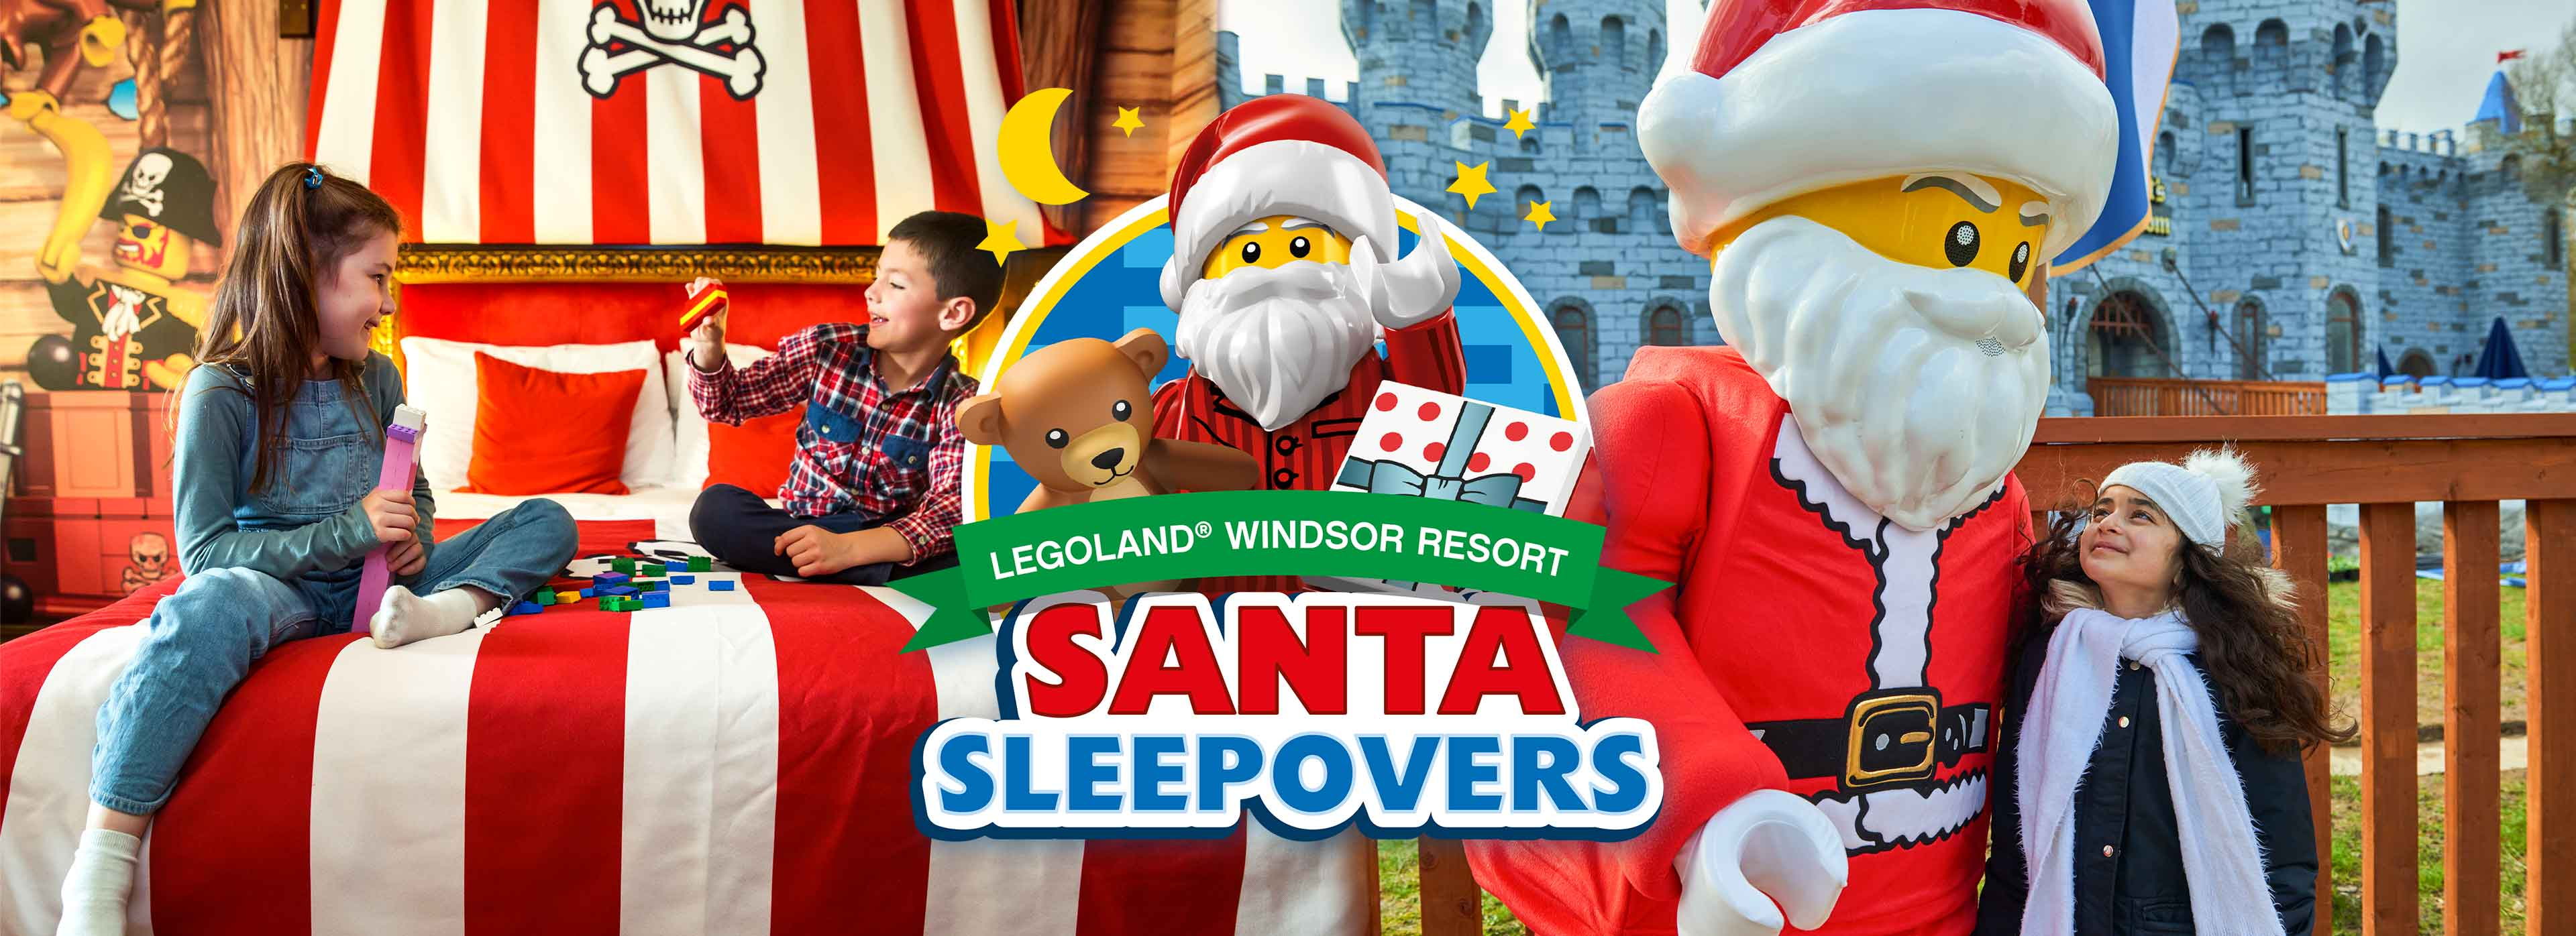 Santa Sleepover 2020 at LEGOLAND Windsor Resort